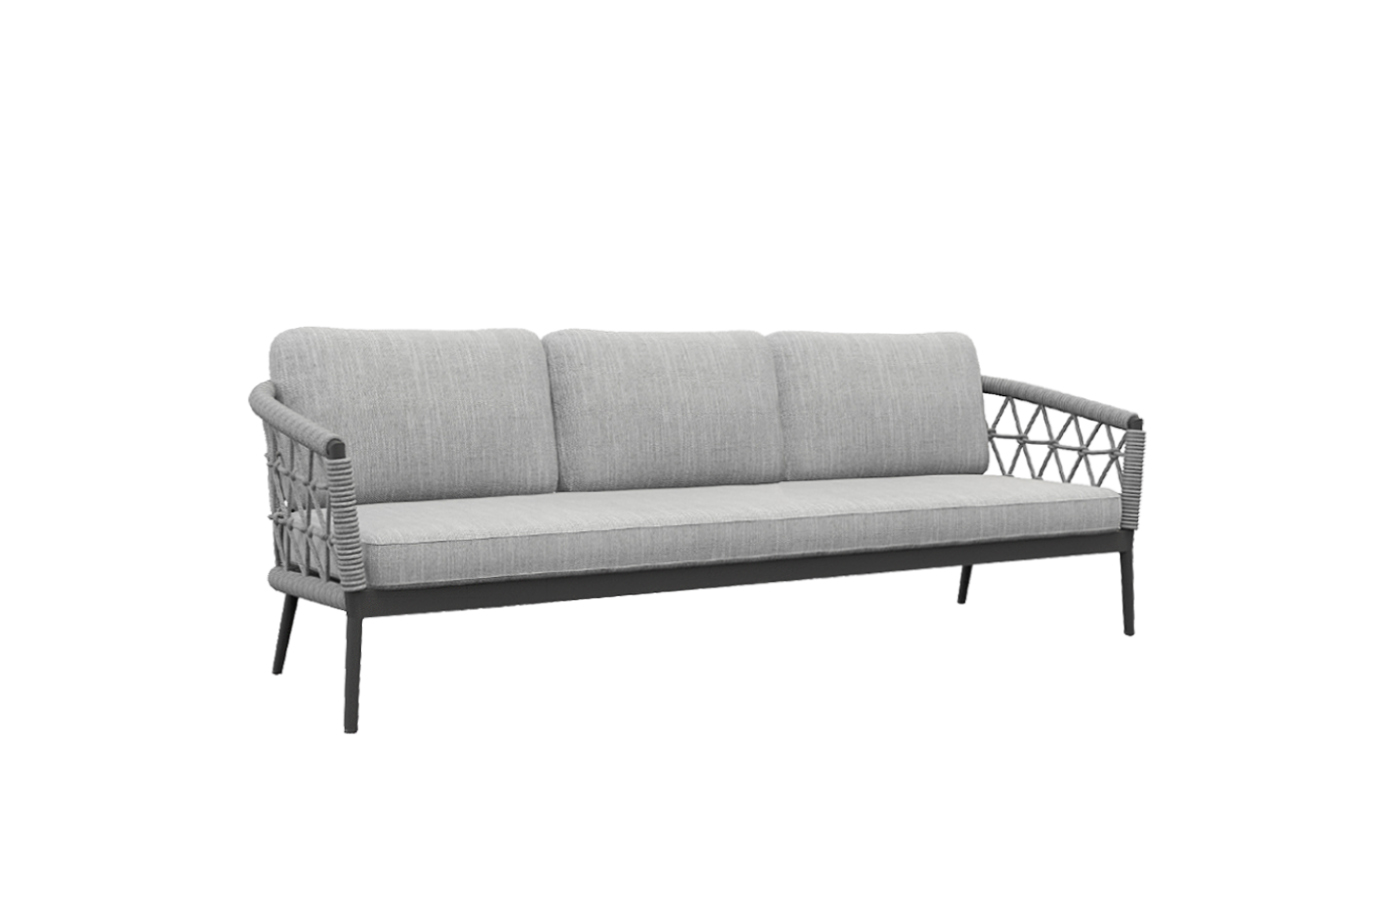 Muses 3-Seater Sofa